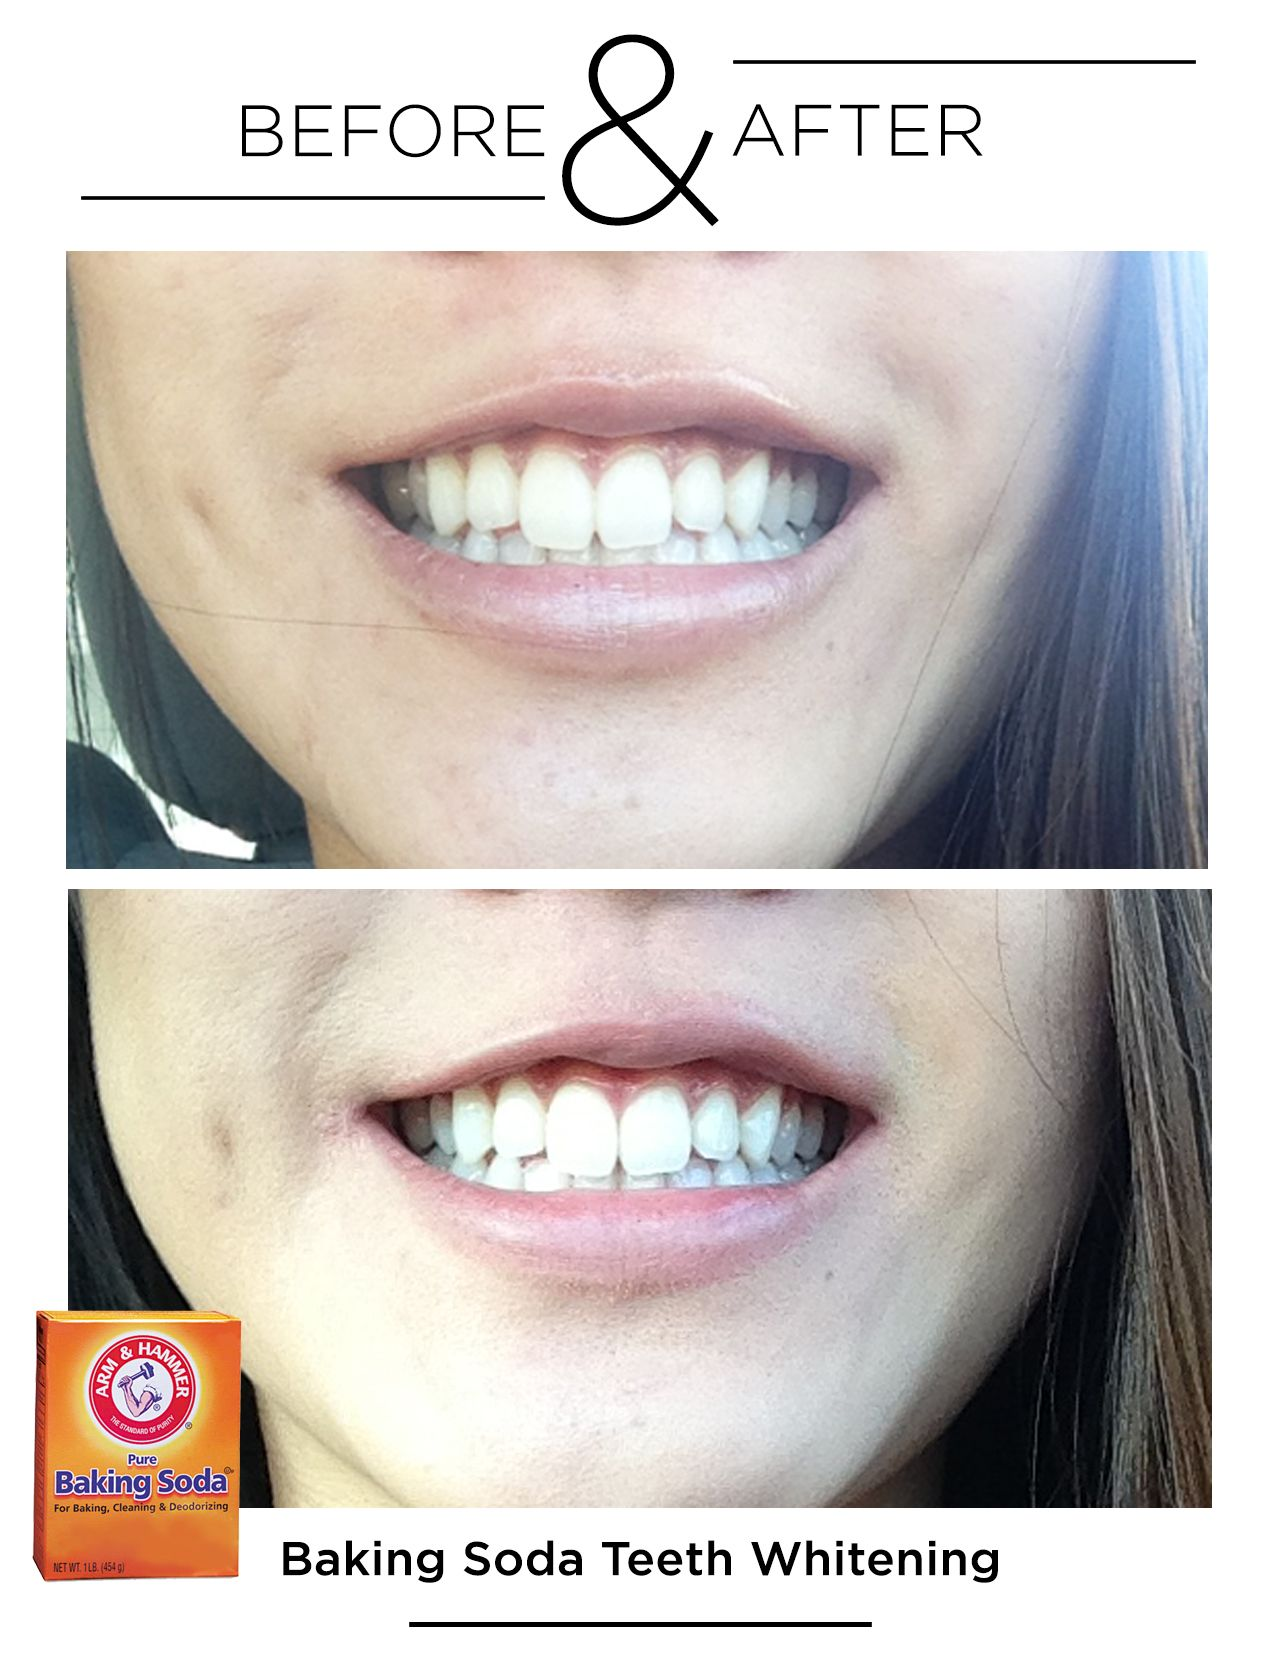 Before & After Teeth Whitening with Baking Soda BEAUTY